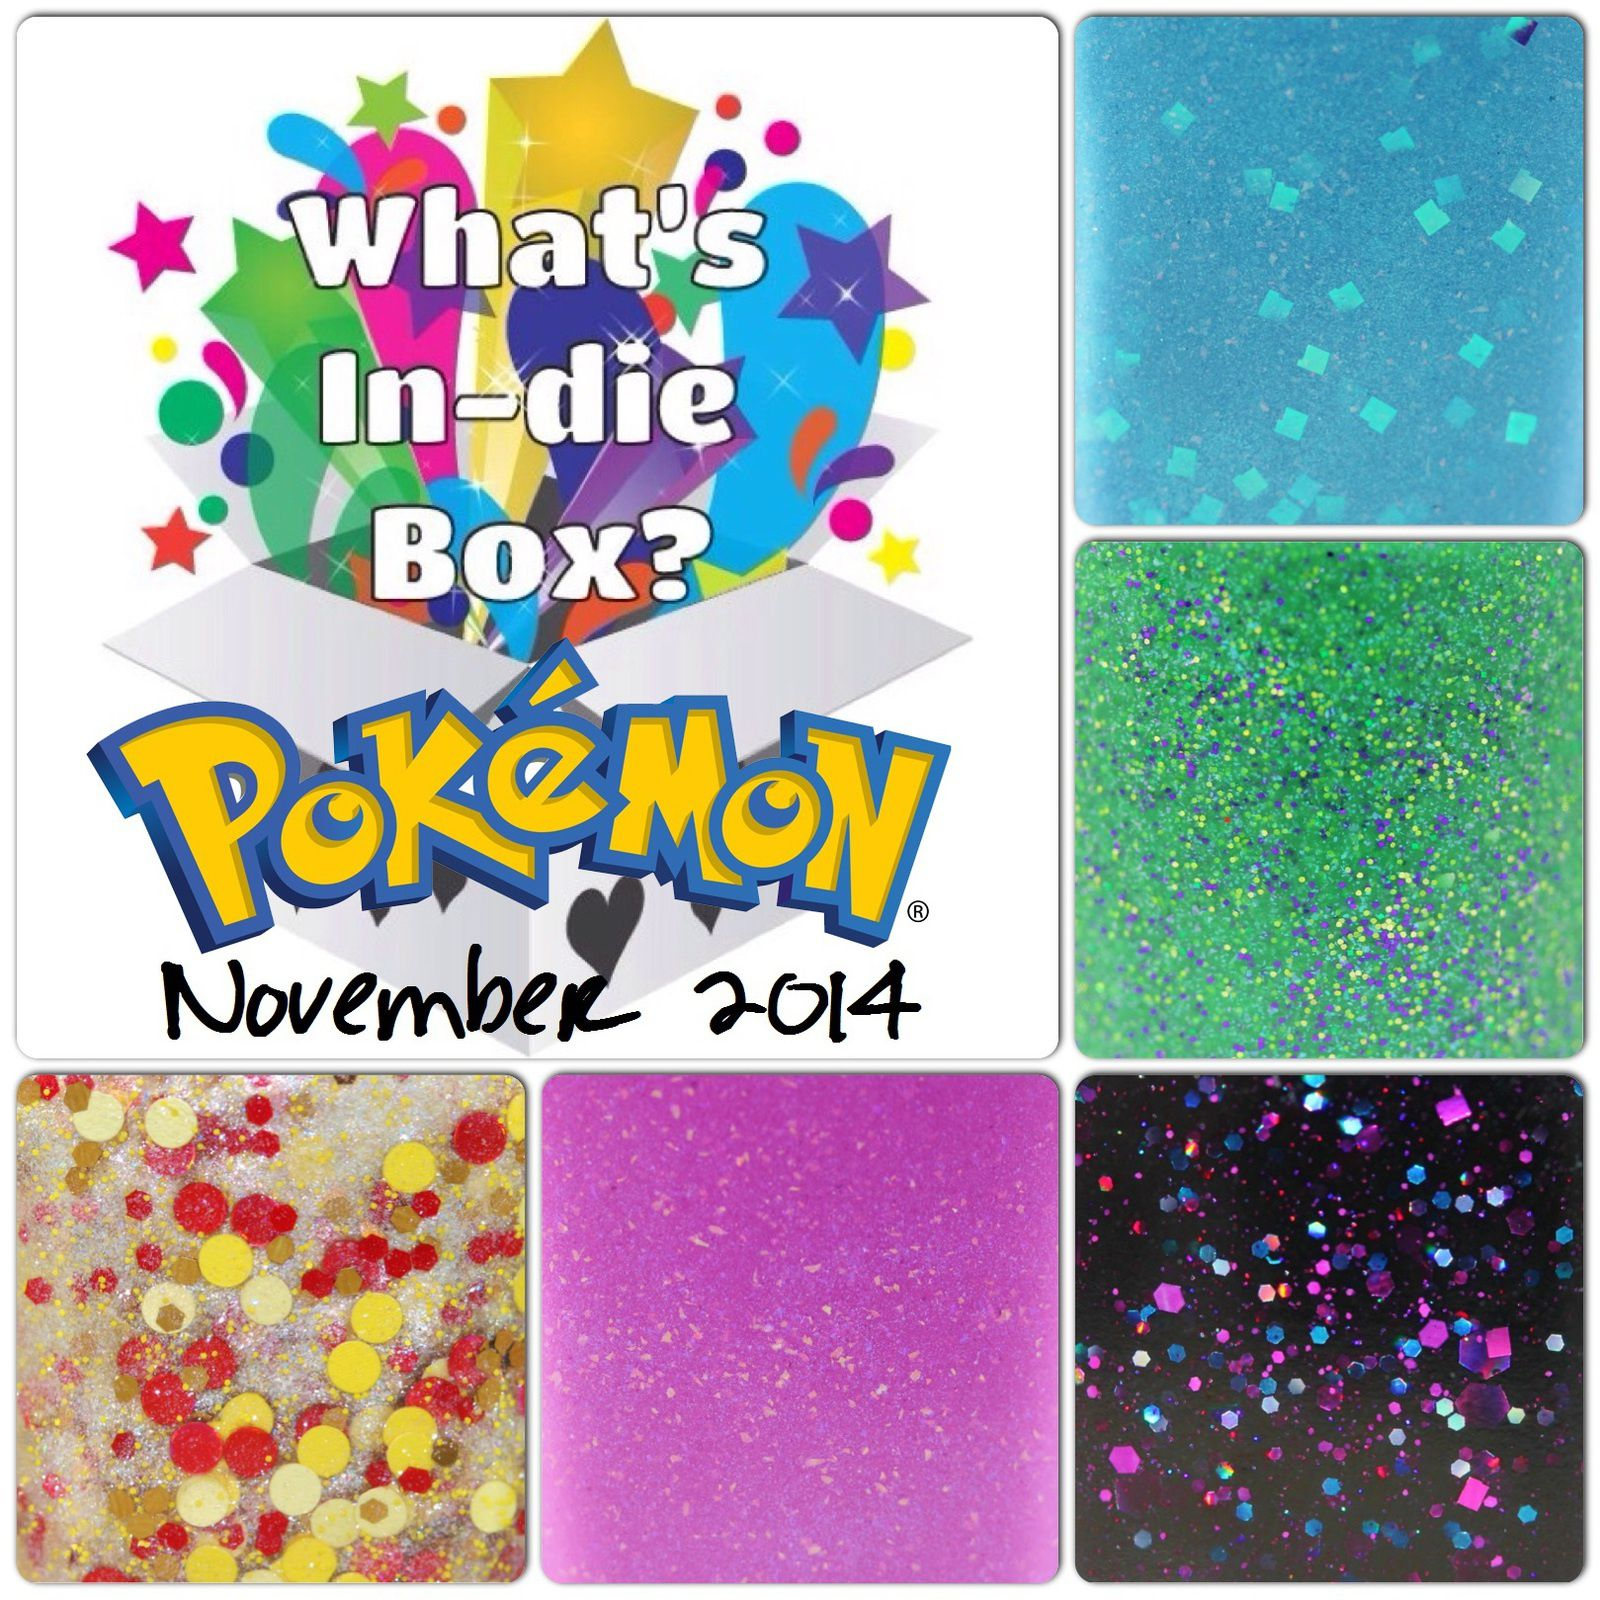 What's Indie Box November 2014 - Pokémon